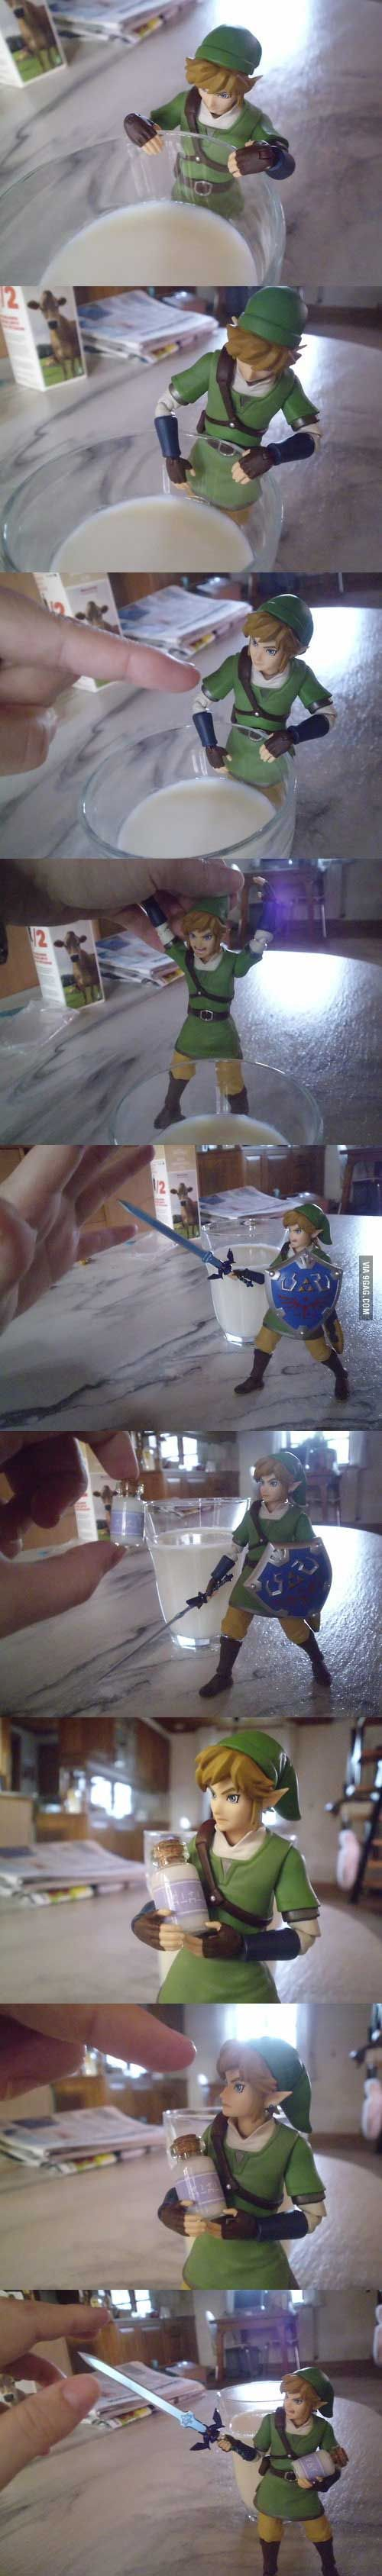 nintendon-zelda-a-milk-between-worlds